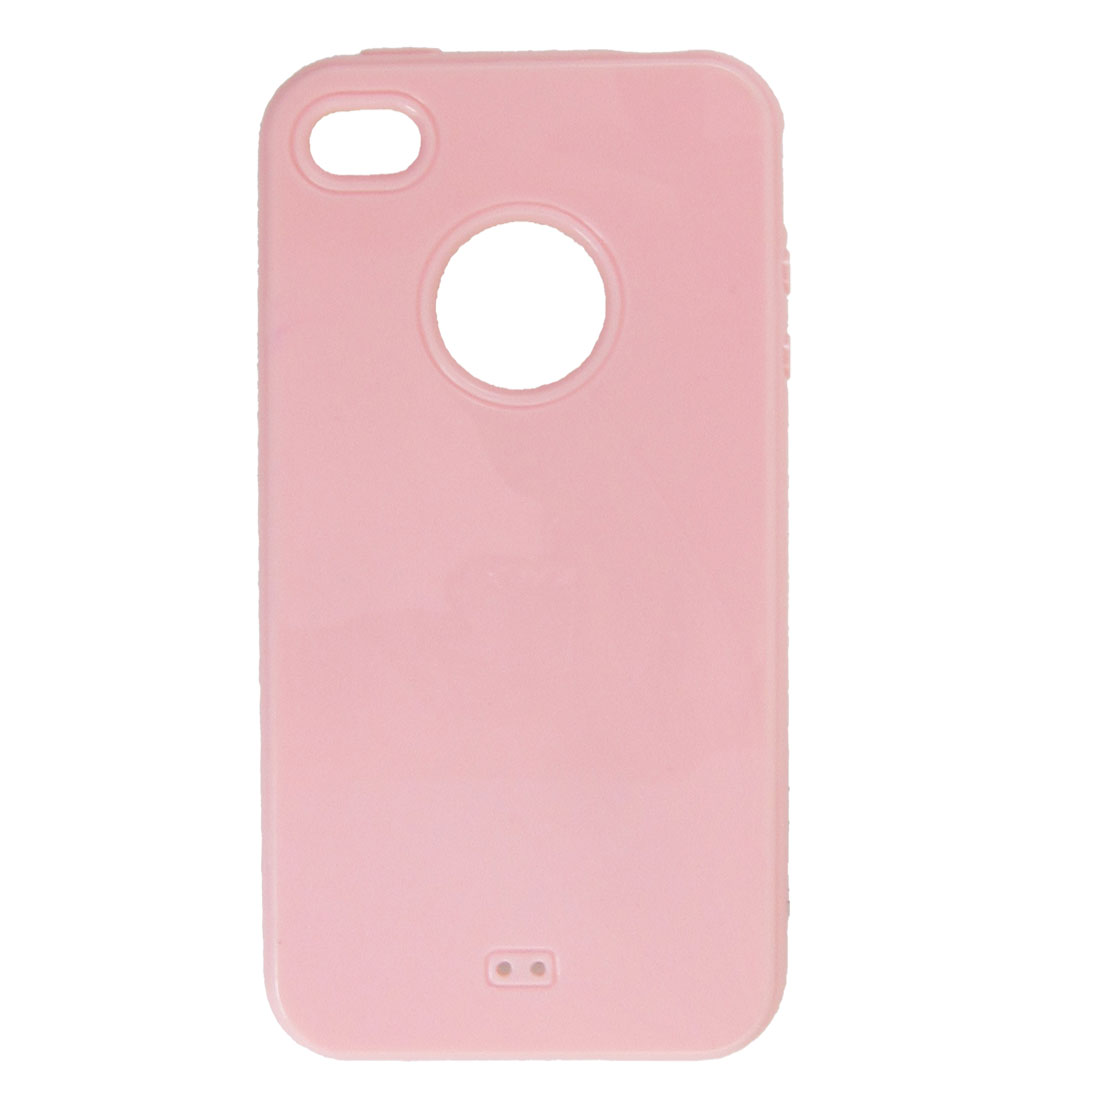 Pink Soft Plastic Back Case Protector for iPhone 4G 4S